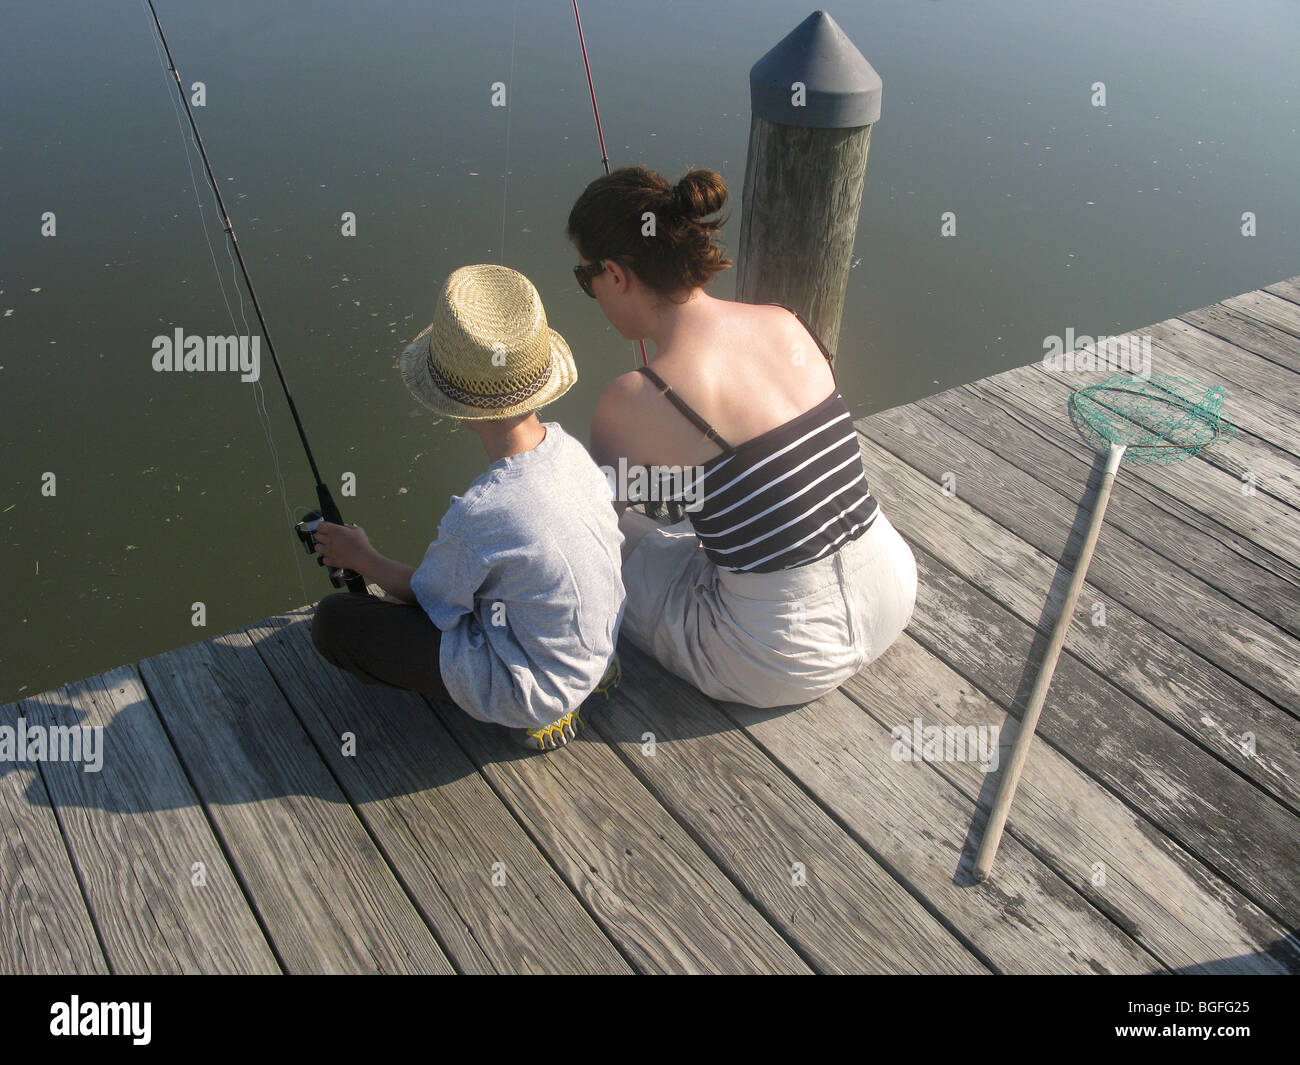 A mother and son sitting on a wooden dock fishing - Stock Image